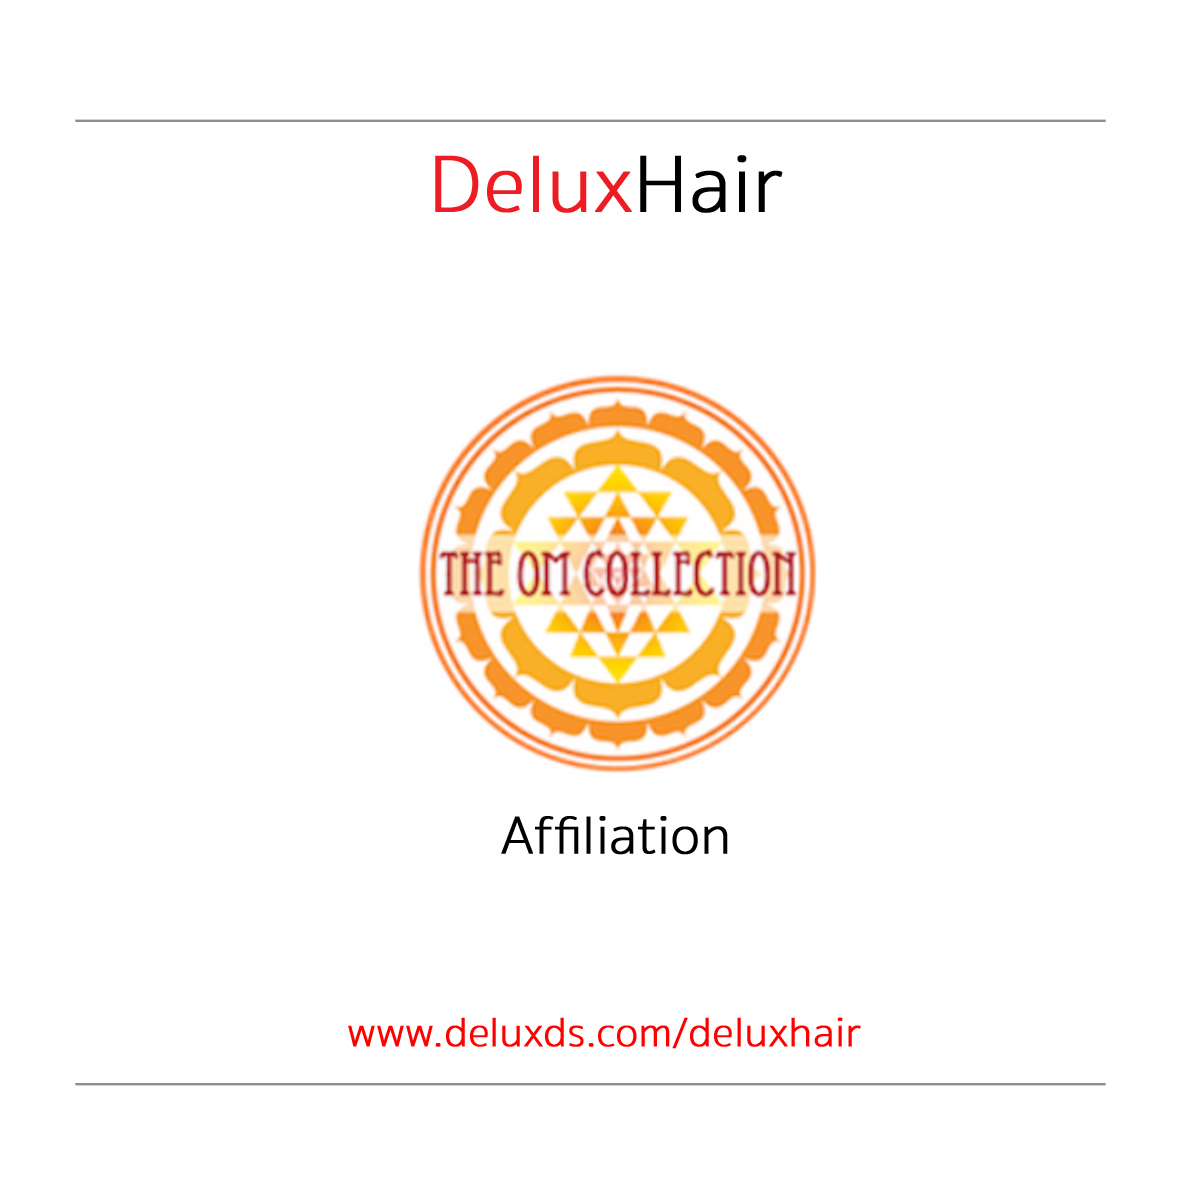 DeluxHair - Affiliate Spotlight [ The OM Collection ]